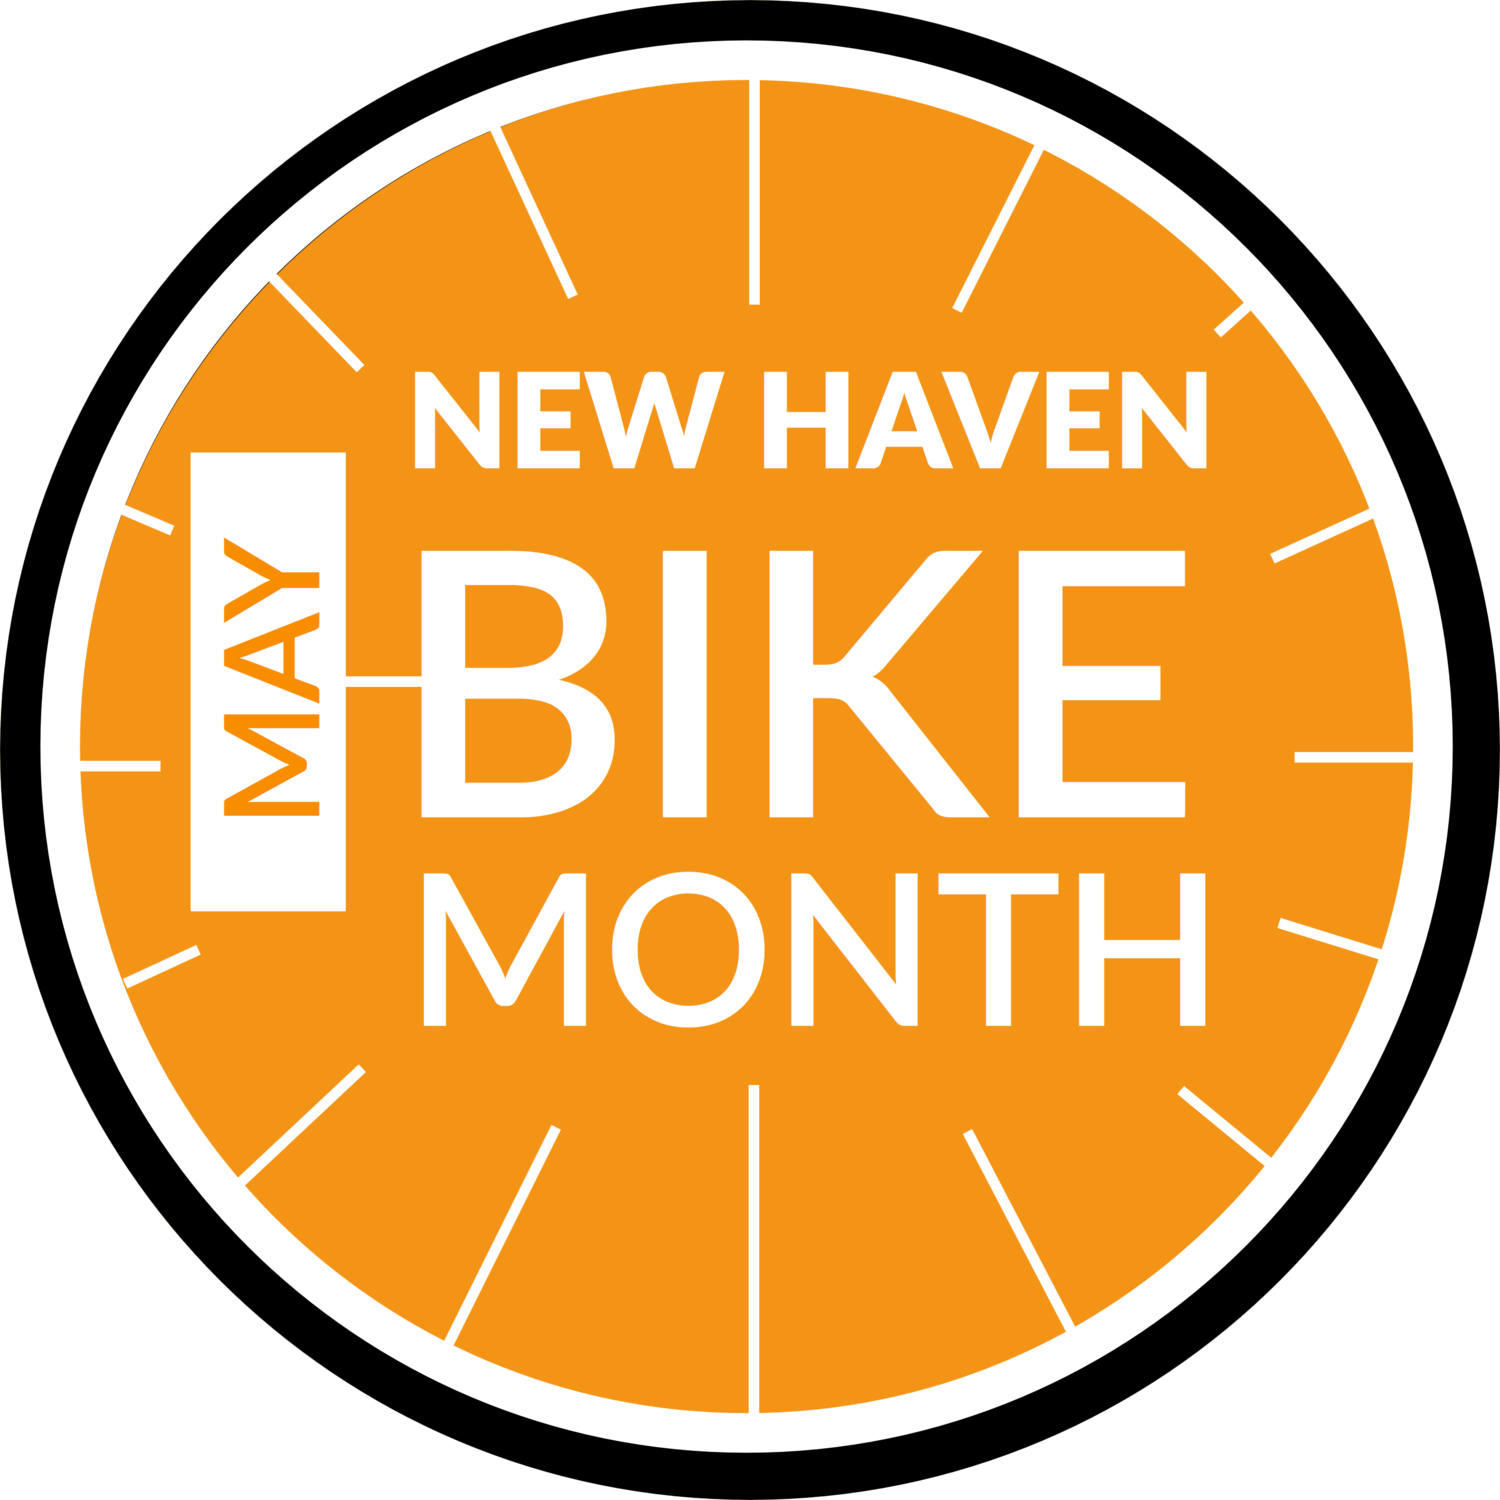 New Haven Bike Month